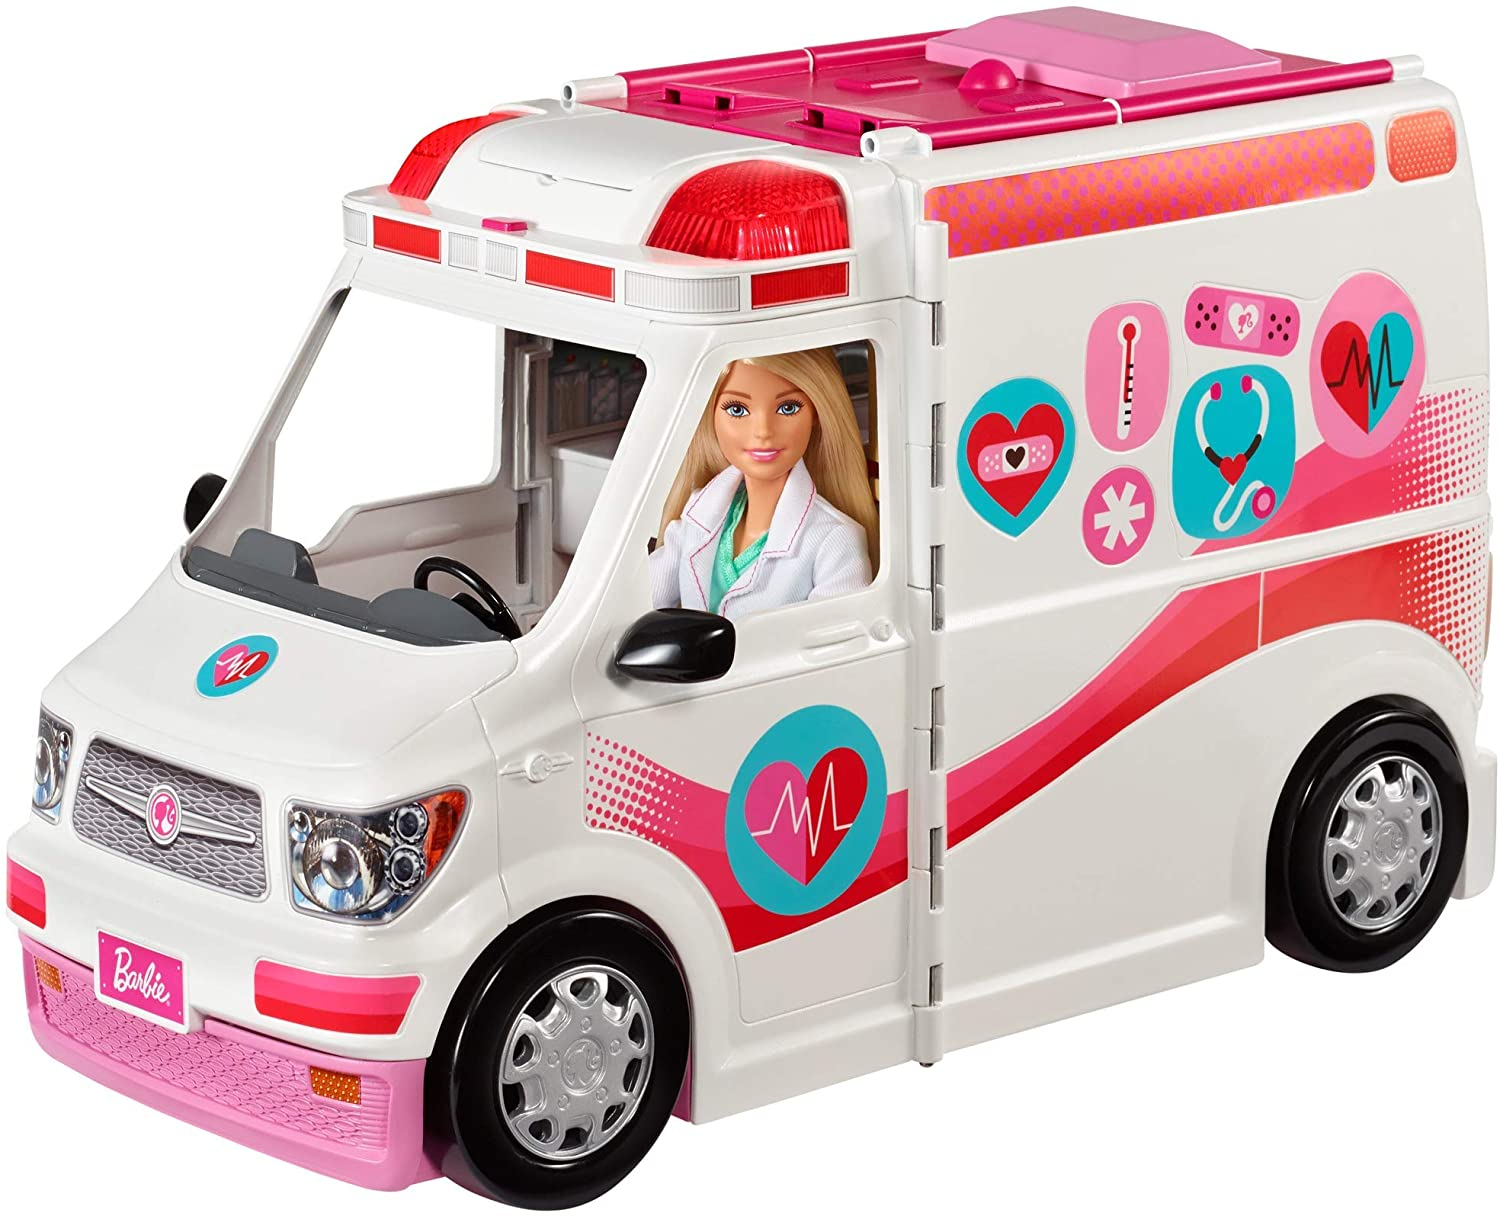 Barbie Ambulance and Hospital Playset